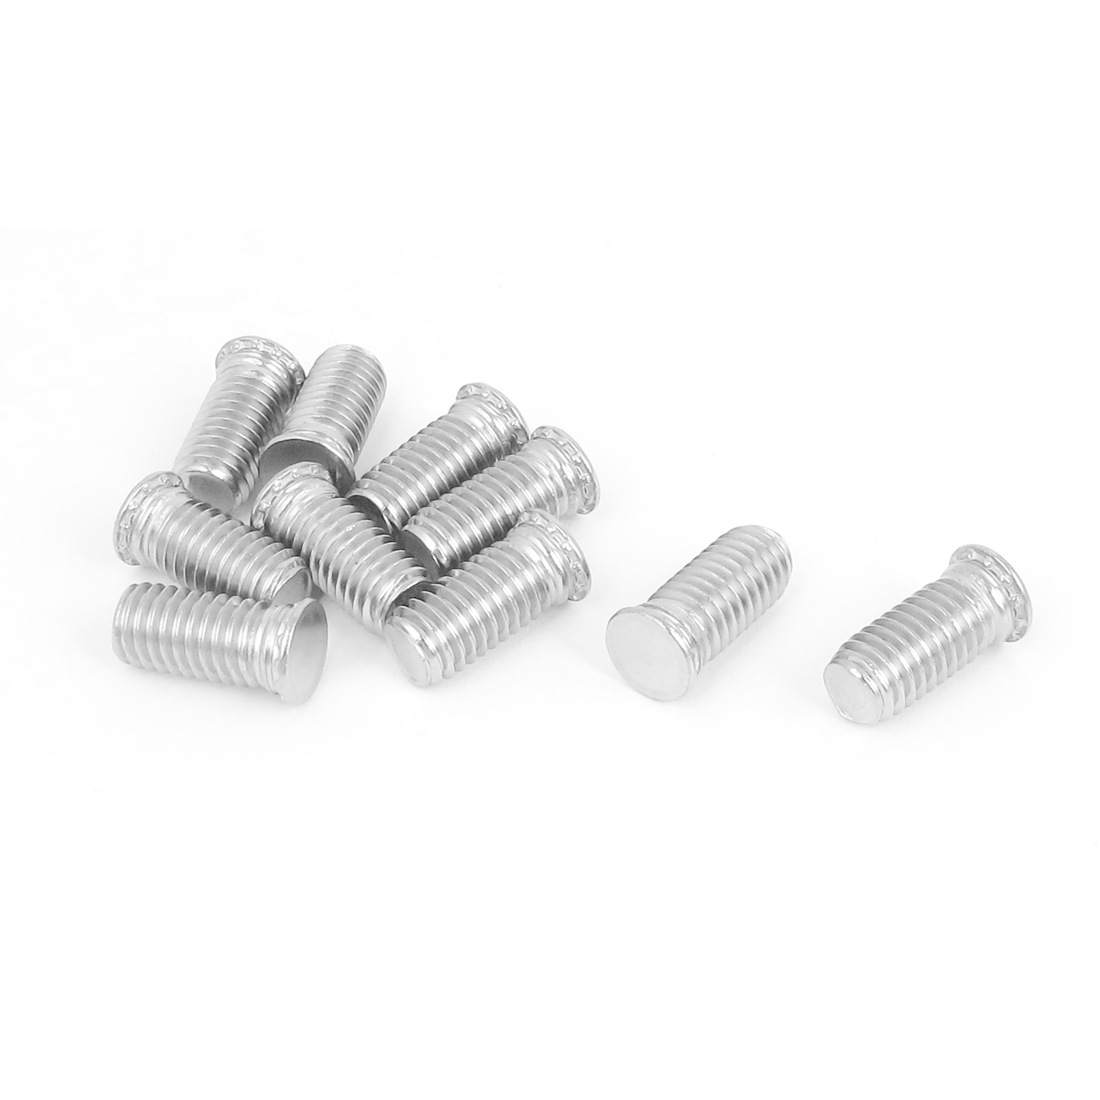 M8x18mm Flush Head Stainless Steel Self Clinching Threaded Studs Fastener 10pcs